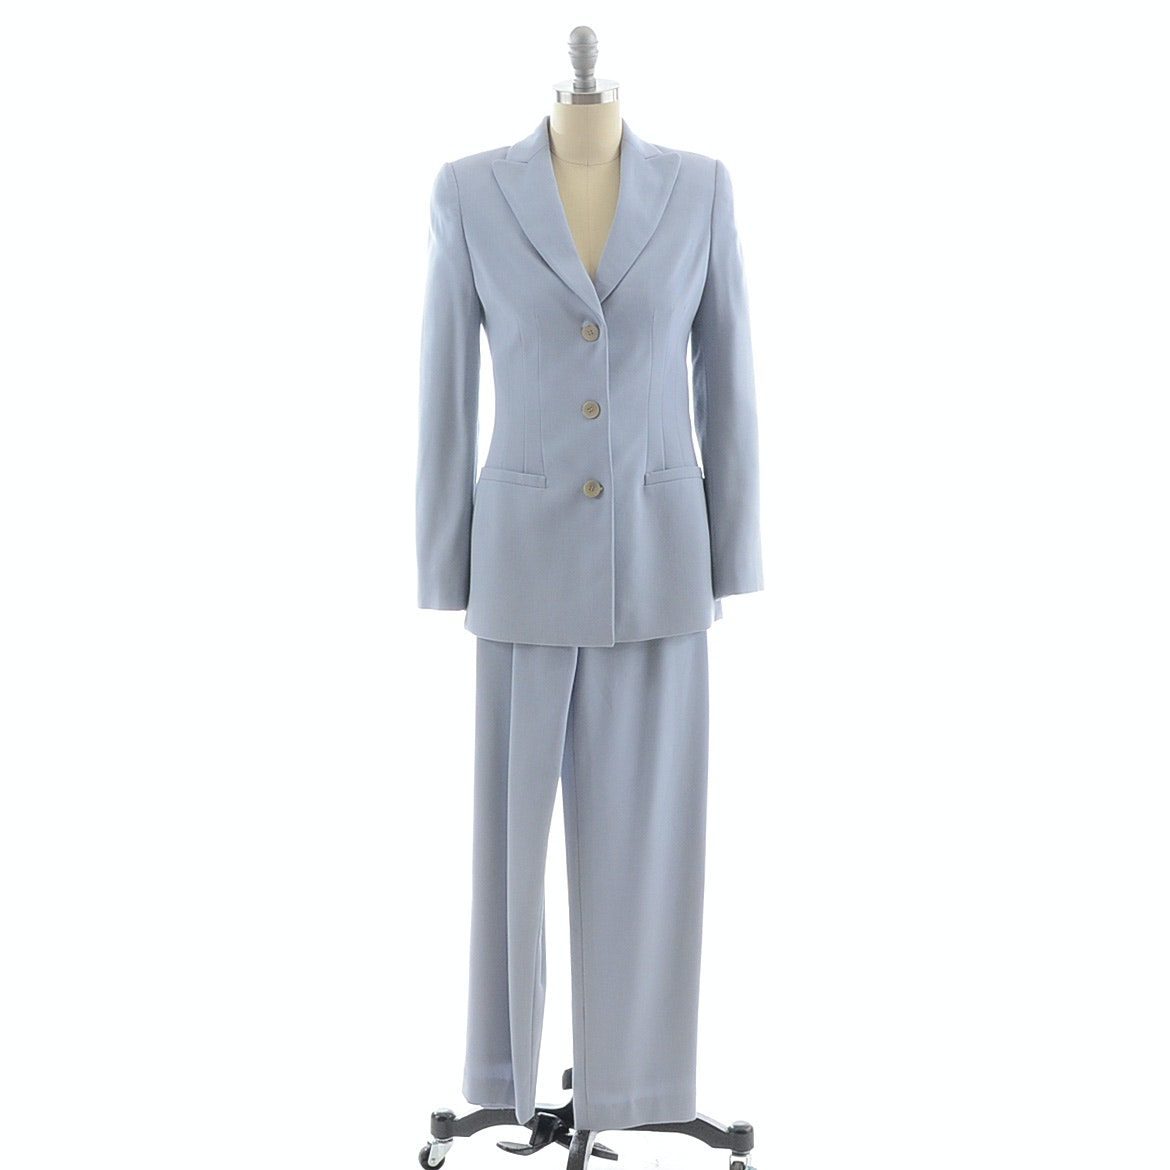 Circa 1990s Giorgio Armani Pant Suit in a Pale Blue Grey Pure Wool